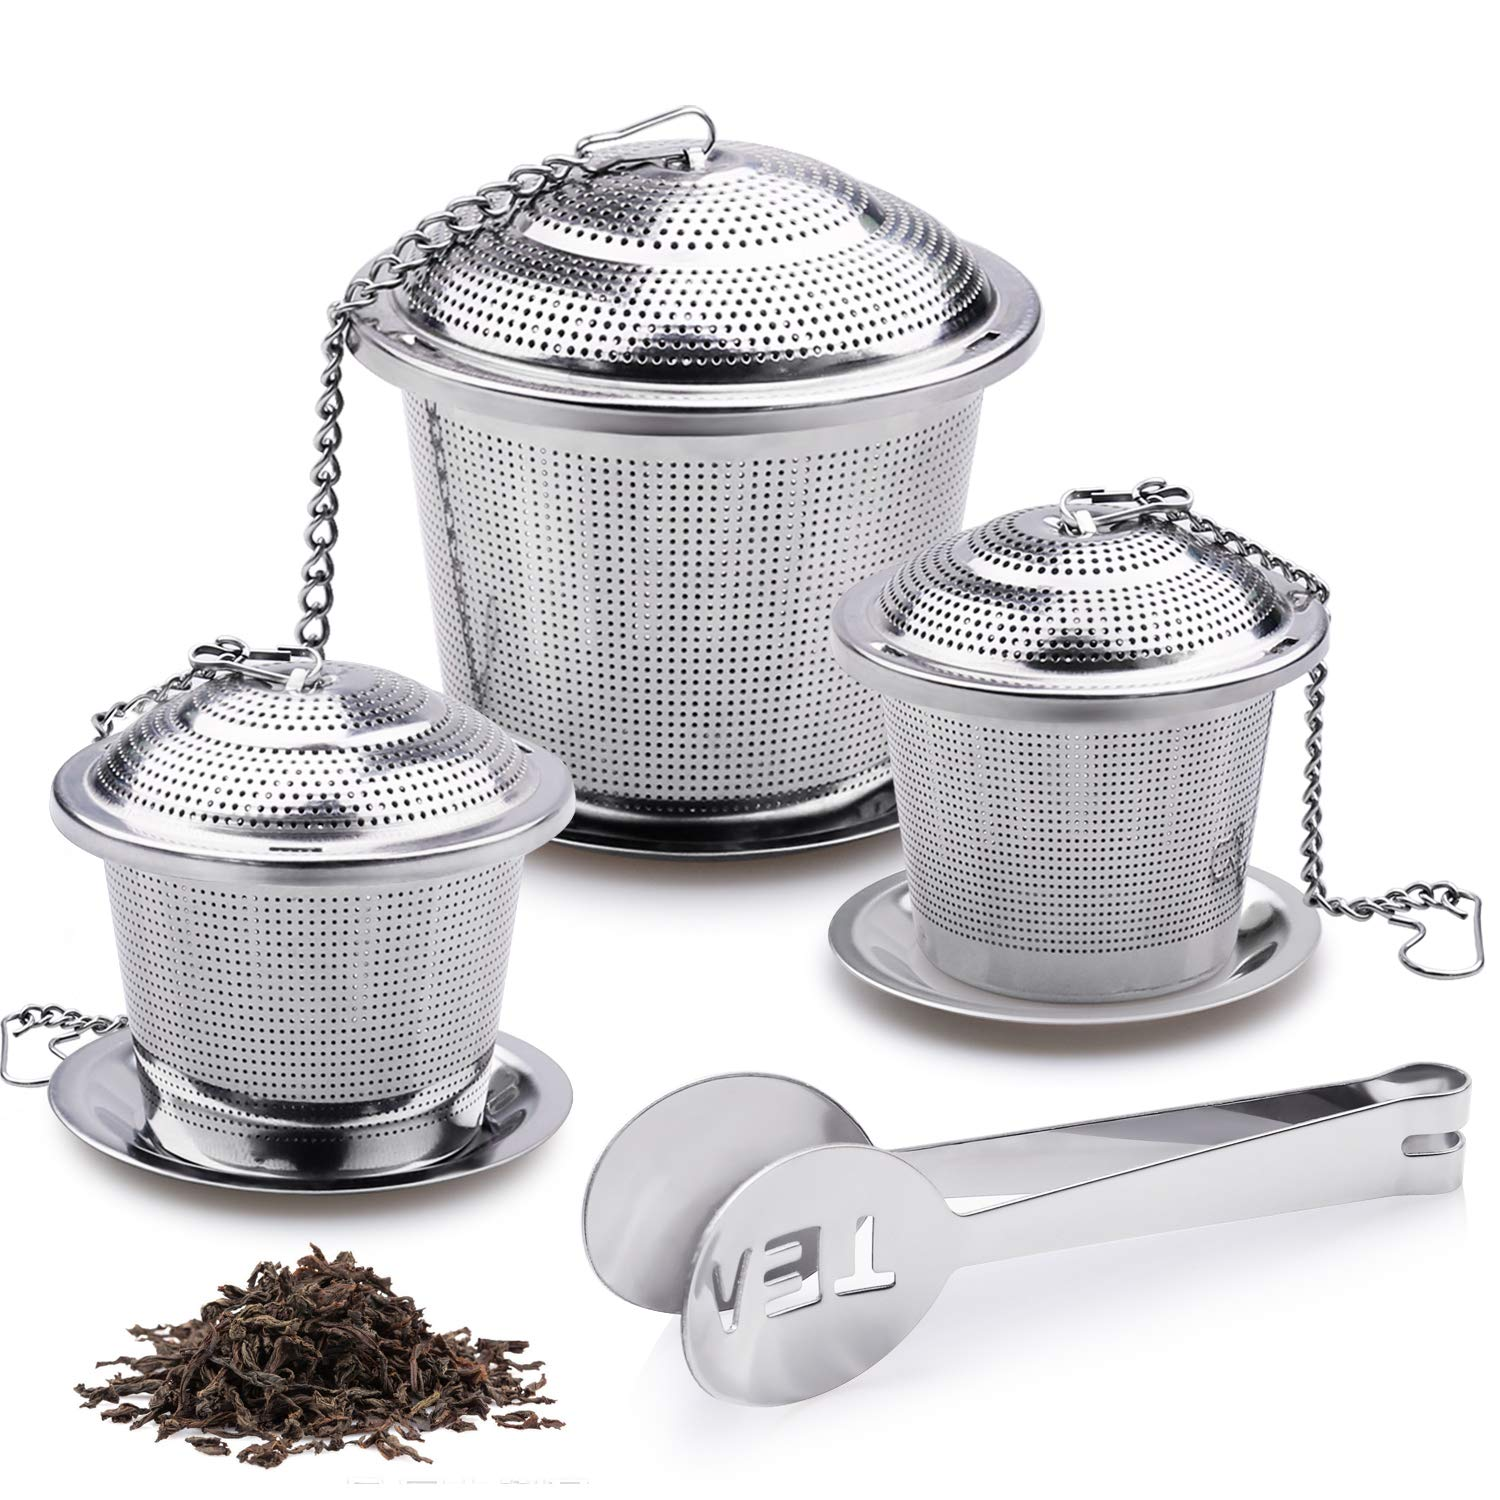 High Quality strainer and infuser